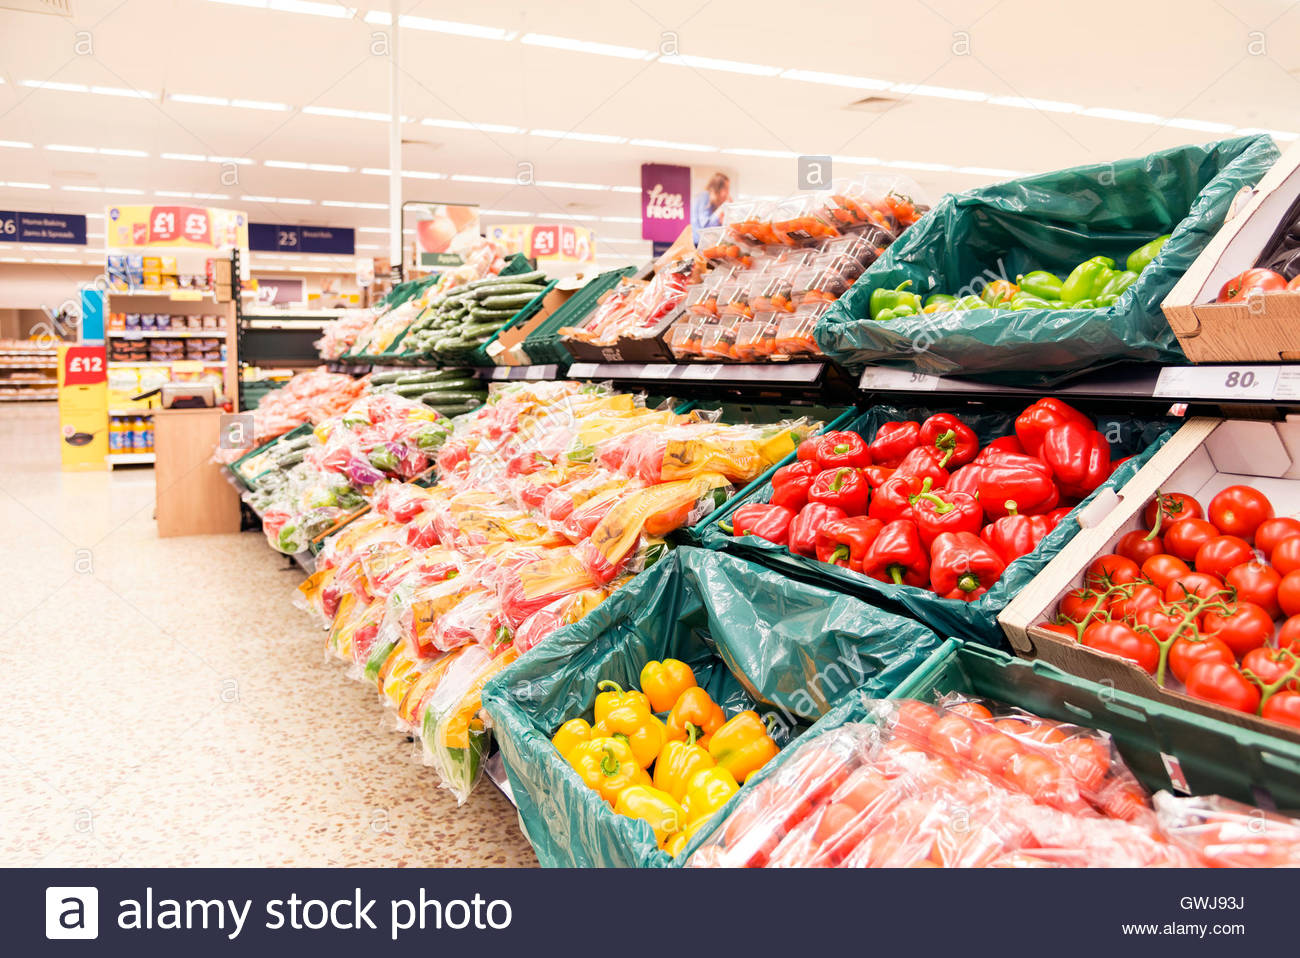 Bell peppers for sale in a supermarket, UK. - Stock Image